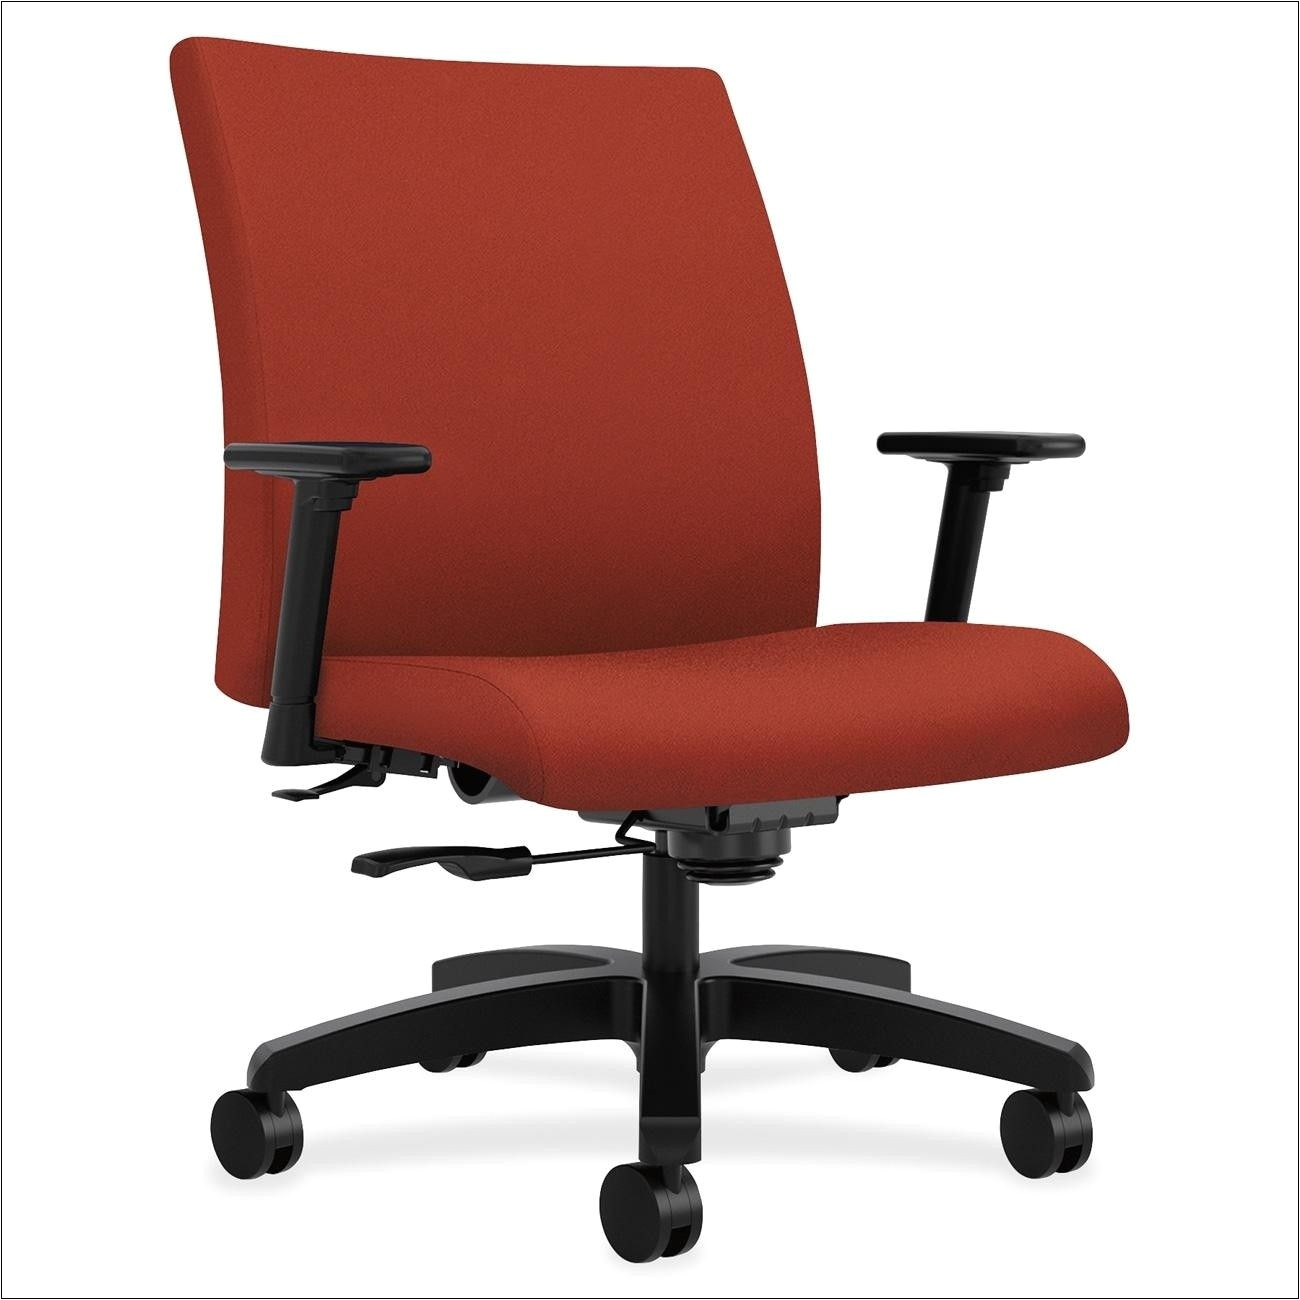 Ergohuman Plus Mesh Office Chair with Leg Rest and Notebook Arm Tall Office Chair with Wheels Wheels Tires Gallery Pinterest